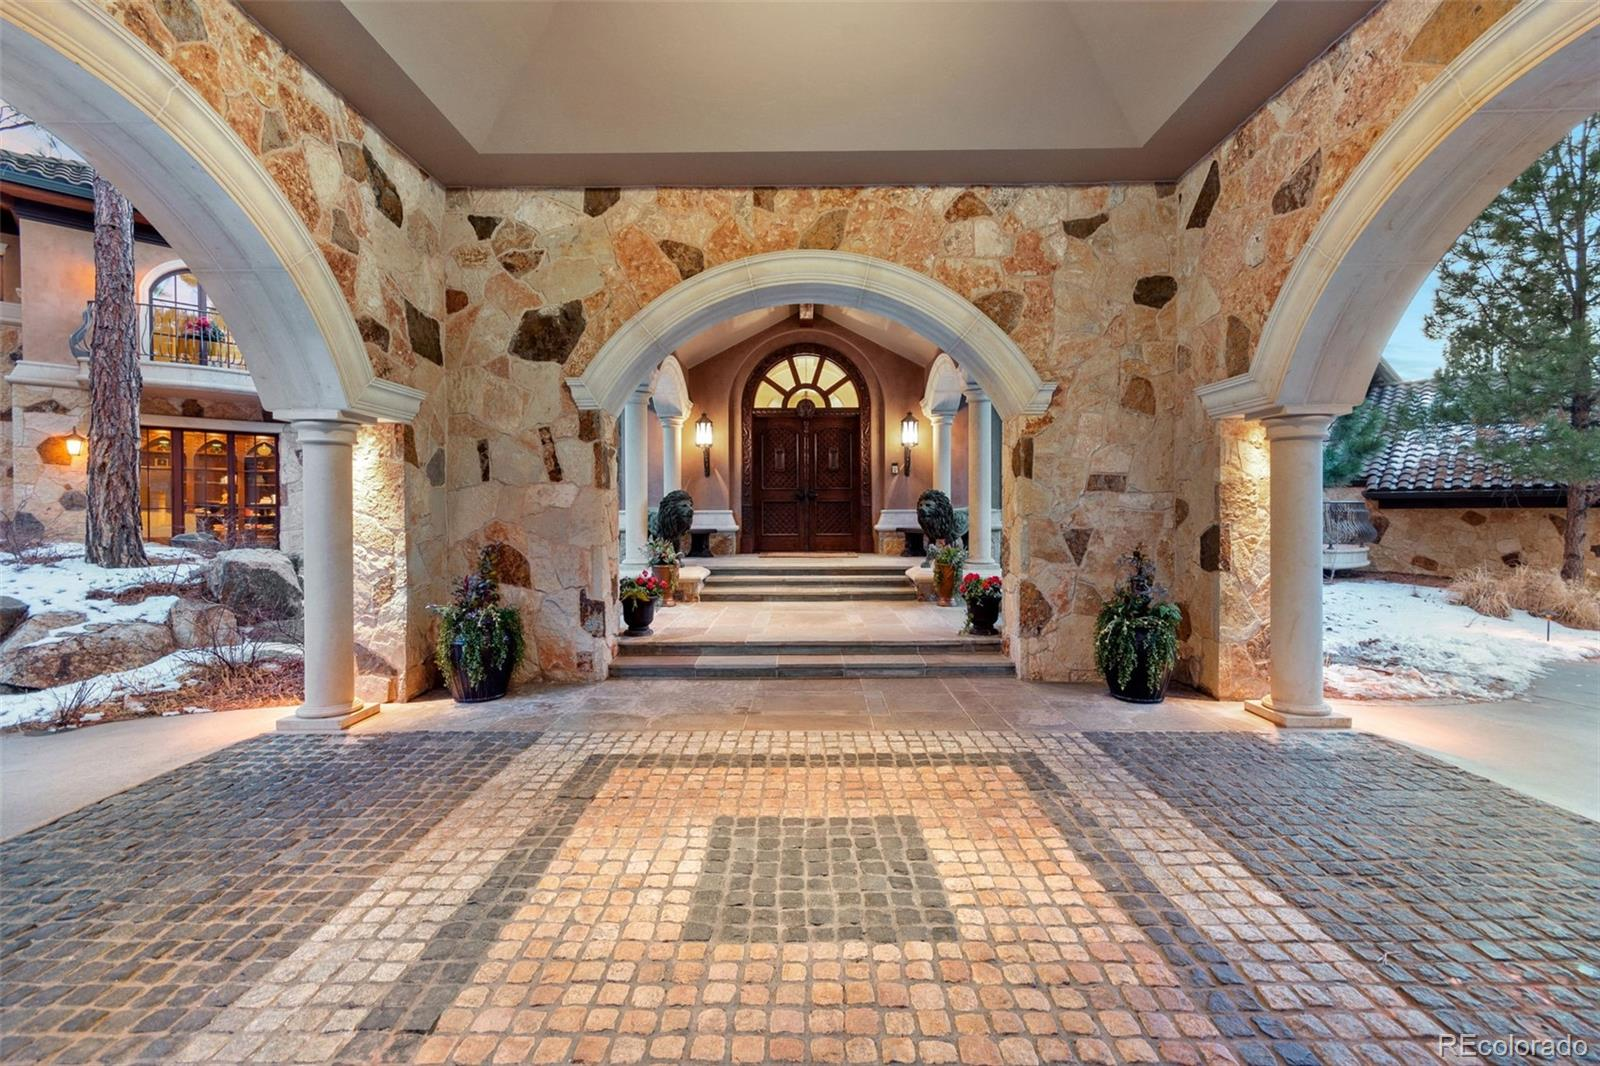 From the moment you arrive at Villa Toscana's grand porte-cochere entry and step through the hand-carved front doors, the attention to detail and artisan craftmanship is evident. This expansive home is truly a work of art created from hand-carved wood, solid crafted stone, Italian marbles, magnificent painted and plastered domes, large arched solid doors, Brazilian ebony flooring, and forged metal. Architect Sears Barrett designed the home straddling the property's long ridge to maximize passive solar efficiency. The East Wing is entertainment and dining. The West Wing is the private wing with bedrooms, library and offices. The wings are connected via two groin vaulted galleries. The main level features the kitchen, hearth room, living room, dining room, library-office, and master suite.  The lower level full walkout features the theatre, bar, wine cellar and recreation room. The lower level guest wing includes three bedrooms and a mirrored exercise room with lockers and steam shower. The Villa's eclectic Italian design is accented with Moroccan, Egyptian, and Asian influences. Extensive Green Features include non-toxic building materials. The Villa features a large fully equipped wraparound bar and temp-controlled wine cellar.  The theater has a magnificent carved Egyptian door, custom tiered seating, a performance stage with adjoining dressing room, remote control projector, lighting, audio and stage curtains.  The main floor master suite has a private sitting room and balcony/spiral staircase, large luxurious master bath and steam shower. Every corner of the Villa has custom designed trim work and finishes. Each level of the Villa provides walkout exit to grade in case of fire and the upstairs bedroom closets serve as panic rooms with solid doors and hard-wired telephones.  Soak in the property's views, sunsets, nature and wildlife on 5,700 sf of outdoor terraces and balconies. FOR MORE INFO & A VIDEO TOUR VISIT www.6eaglepointelane.com.